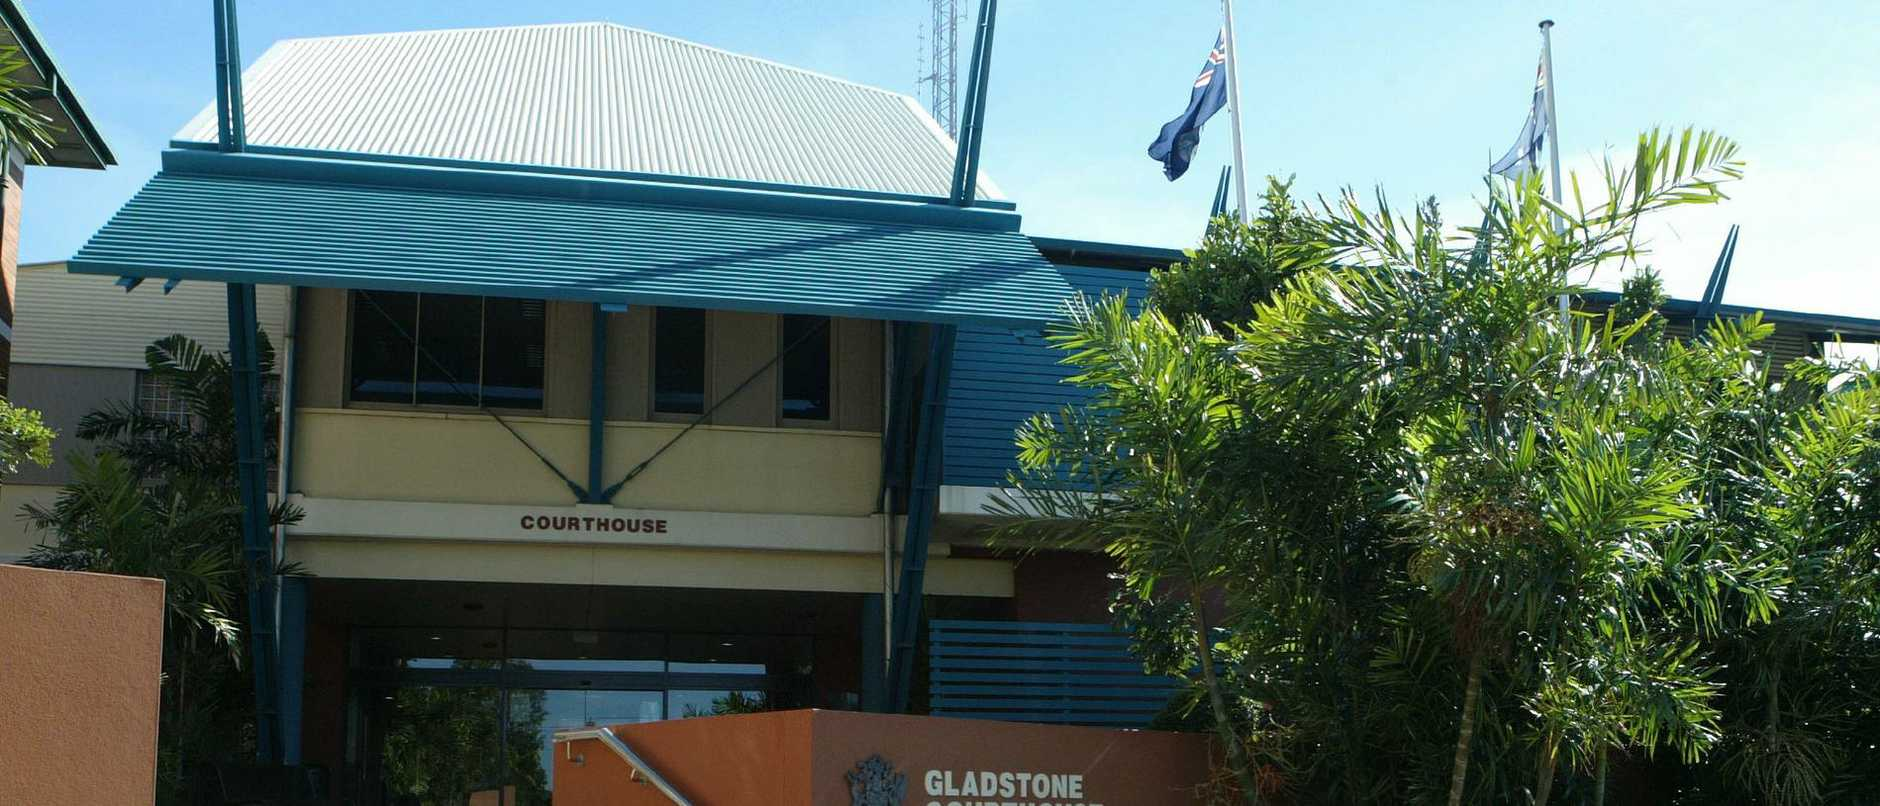 26 May 2005: Gladstone Courthouse. picVanessa/Hunter buildings qld exterior Court House law